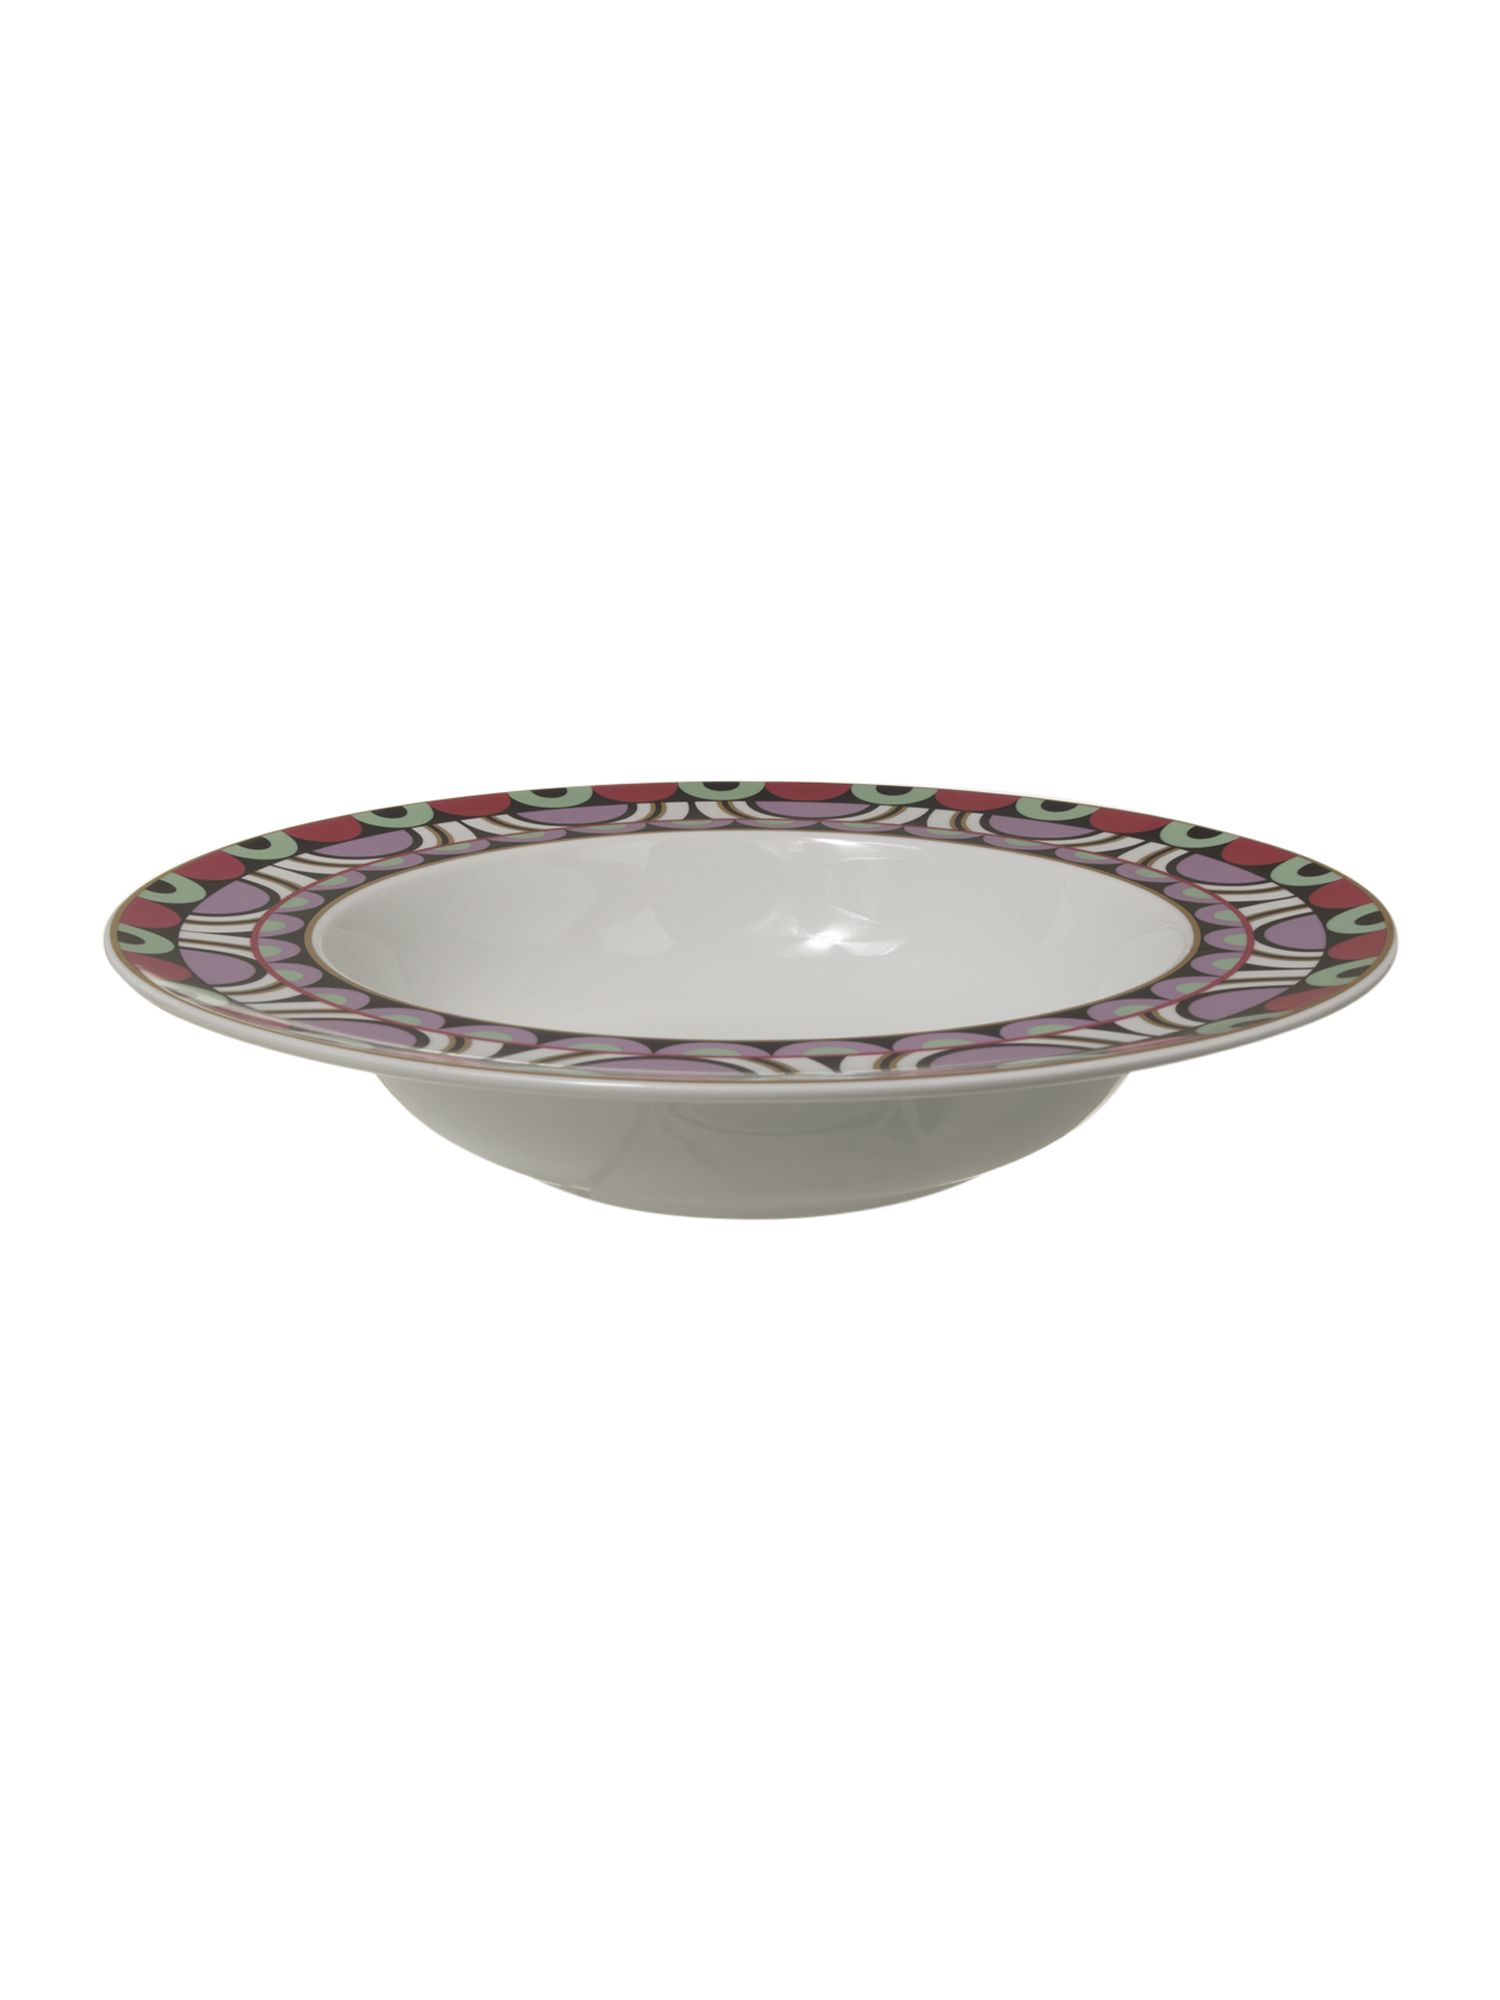 Persia Jewels serving bowl